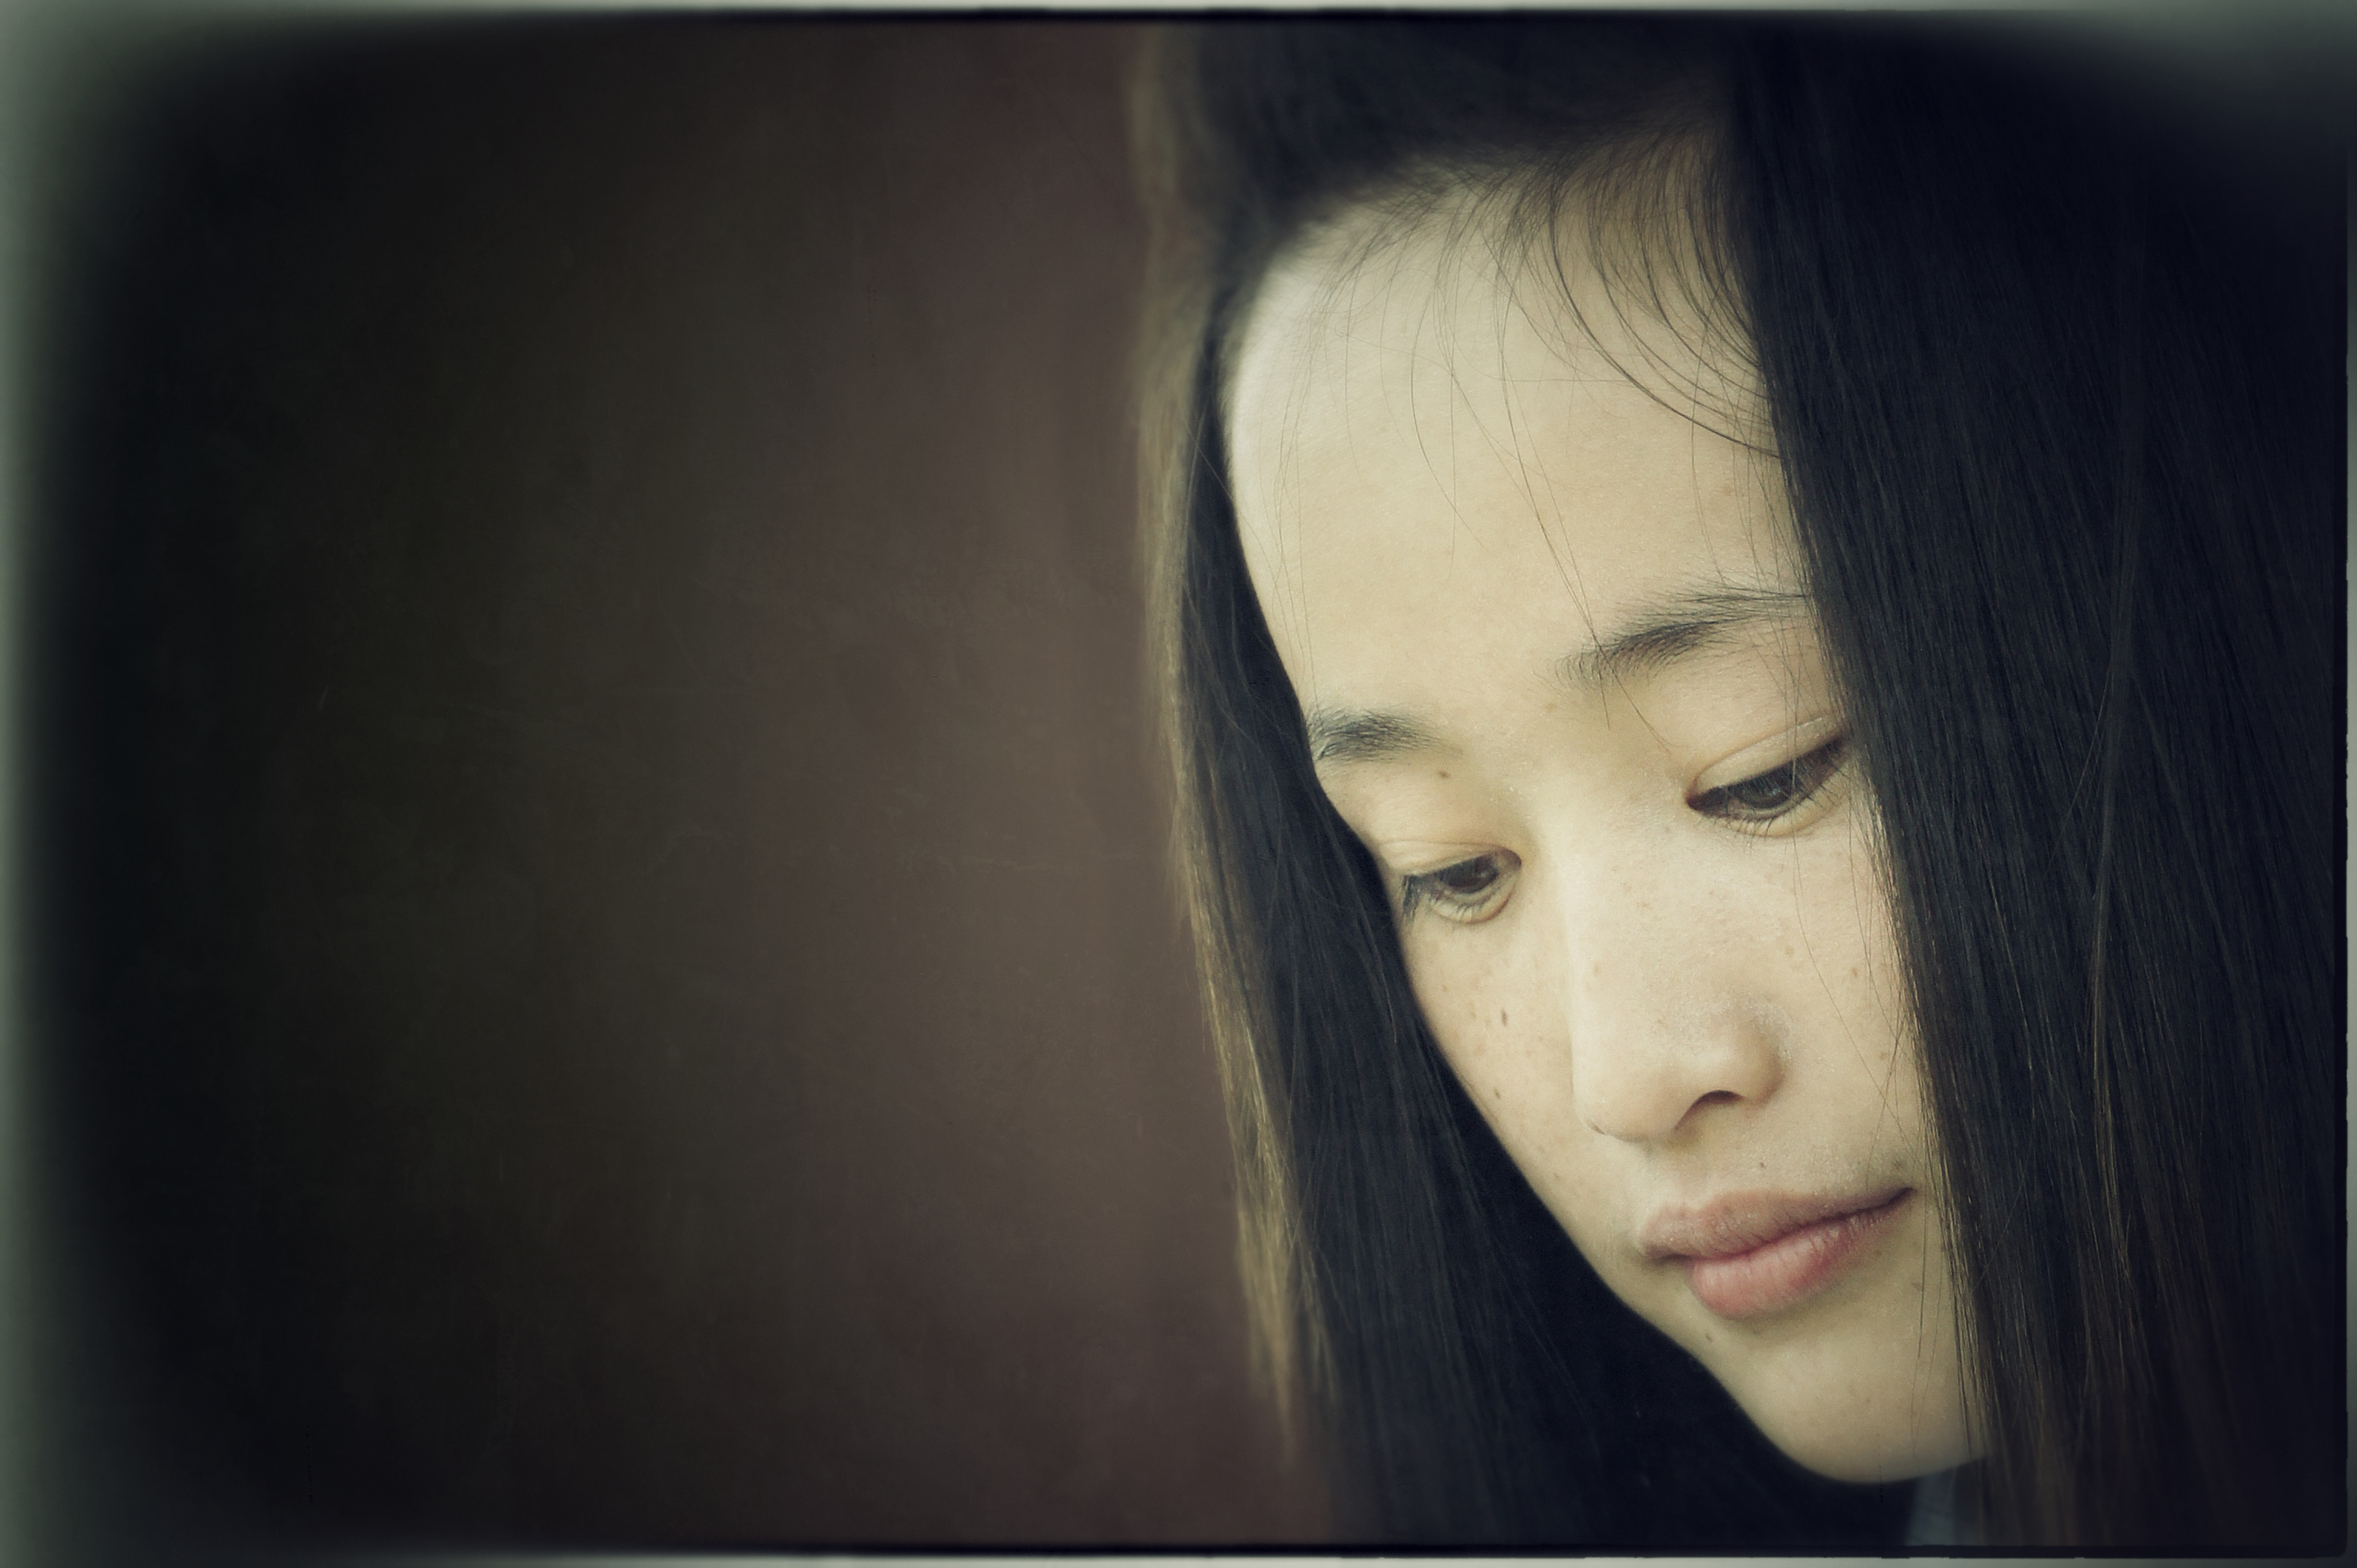 Chinese Portraits : Innocence of Hui Girl - Portraits from diverse ethnic origins like Uyghur, Han, Kazak, Hui, Xibo and Mongol in China.